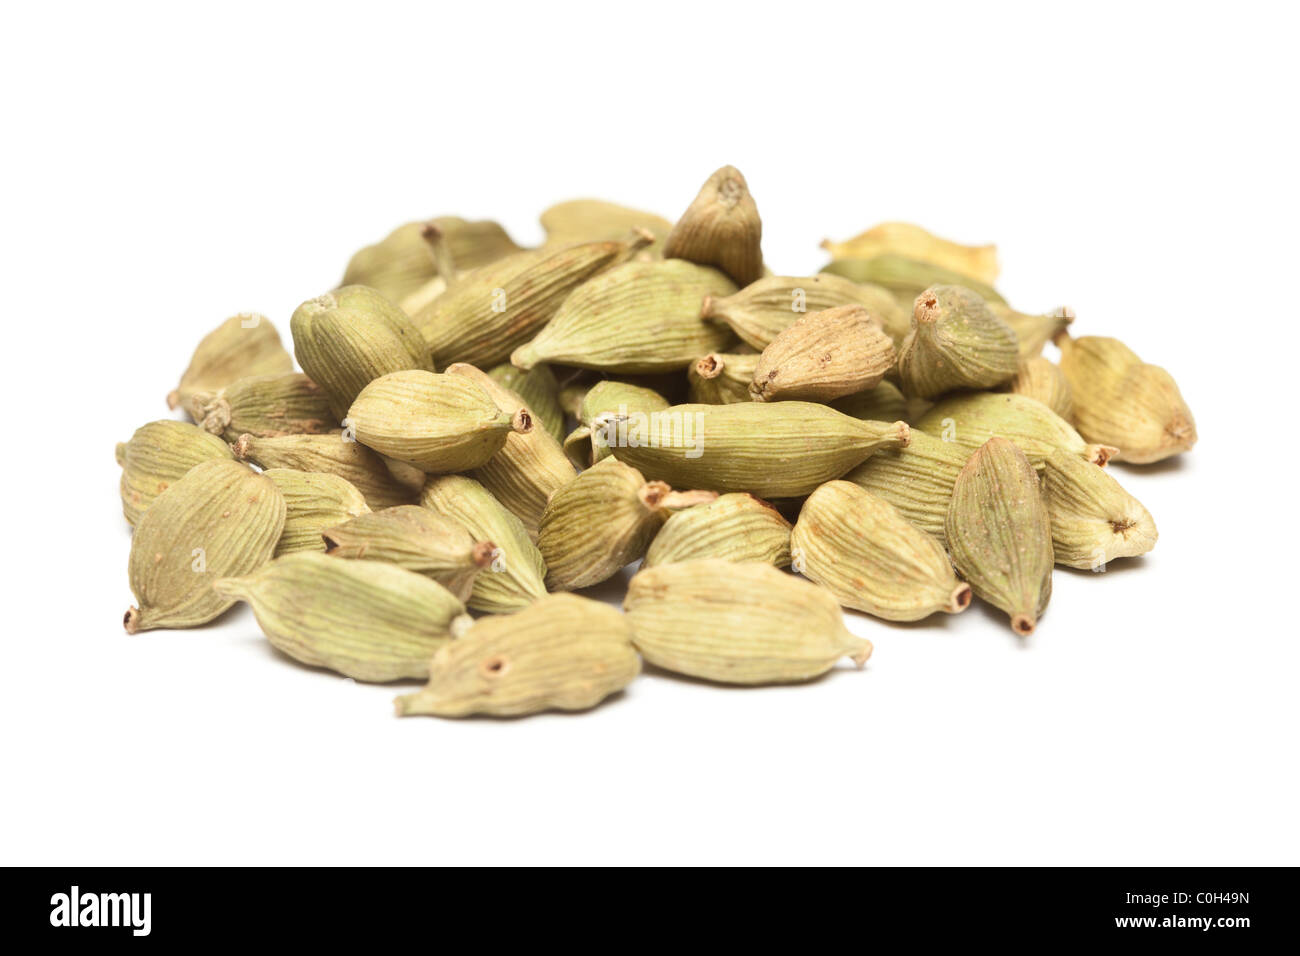 Cardamom pods on a white background. - Stock Image